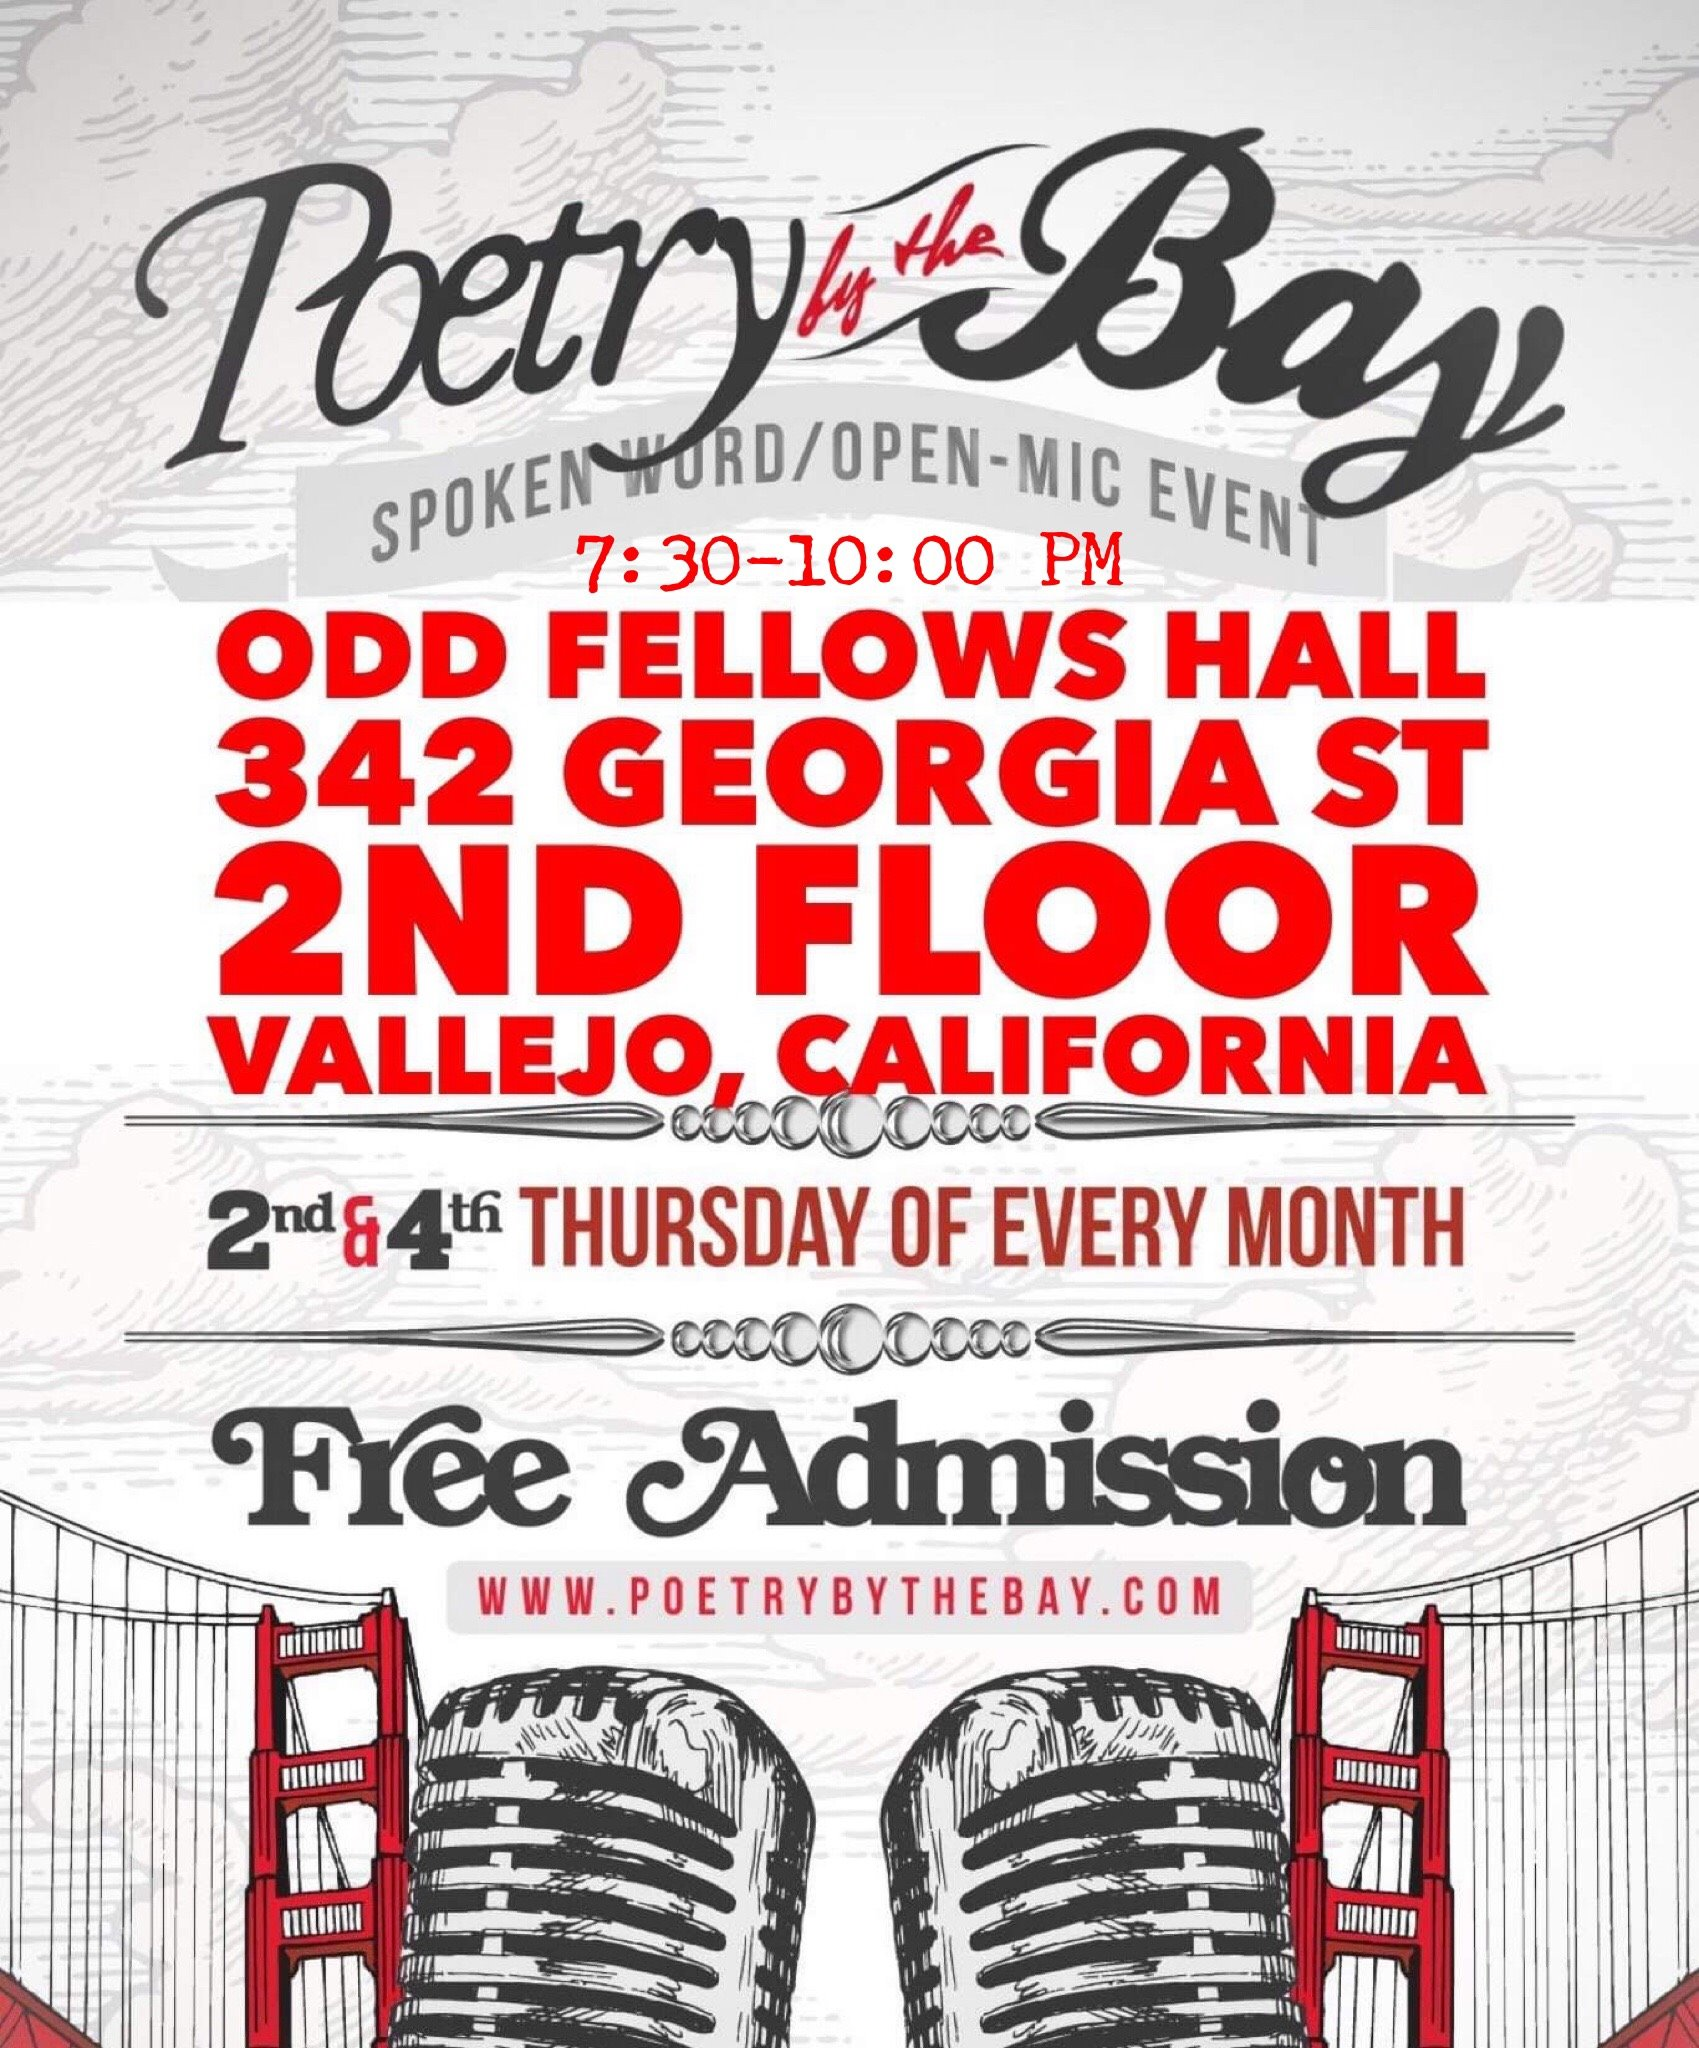 flier for Poetry by the Bay